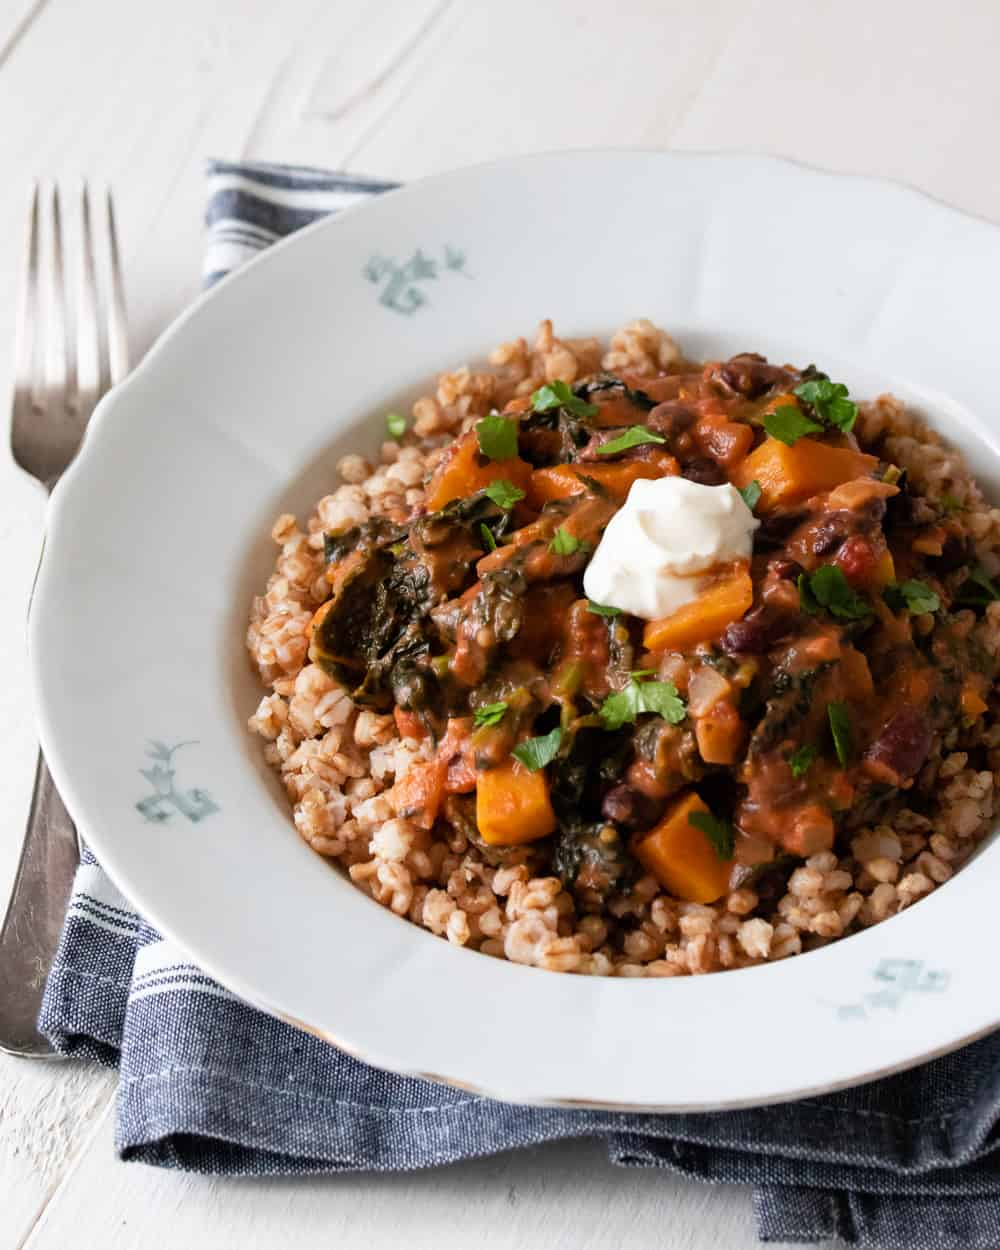 Bowl of pearled wheat with tomato sauce and winter vegetables.